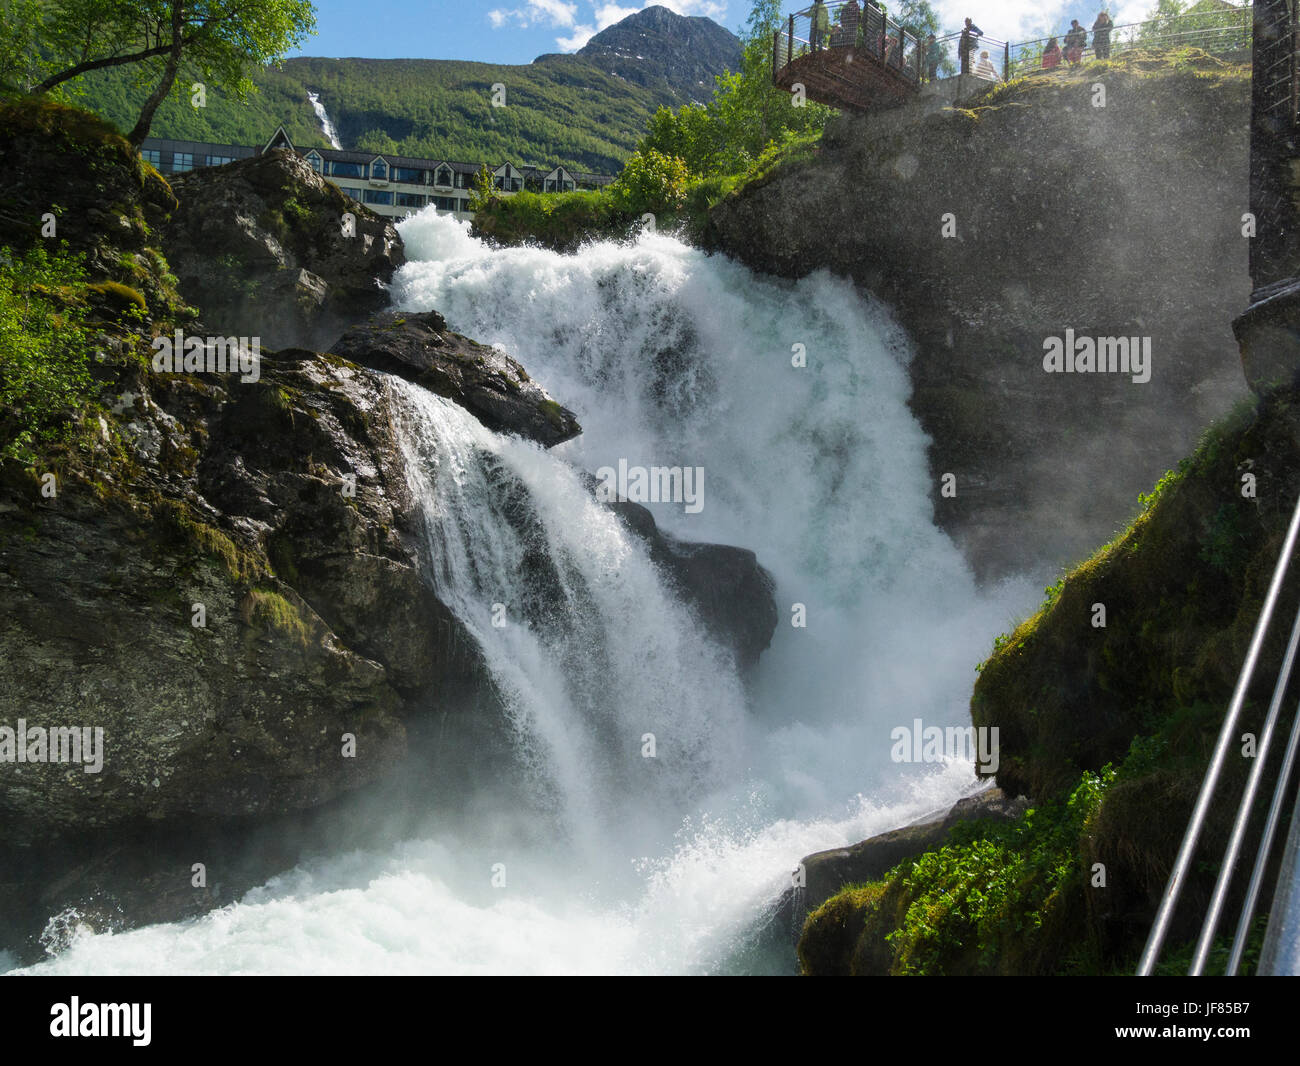 Viewpoints at waterfall on Geirangelva river in beautiful village of Geiranger Sunnmøre region of Møre - Stock Image